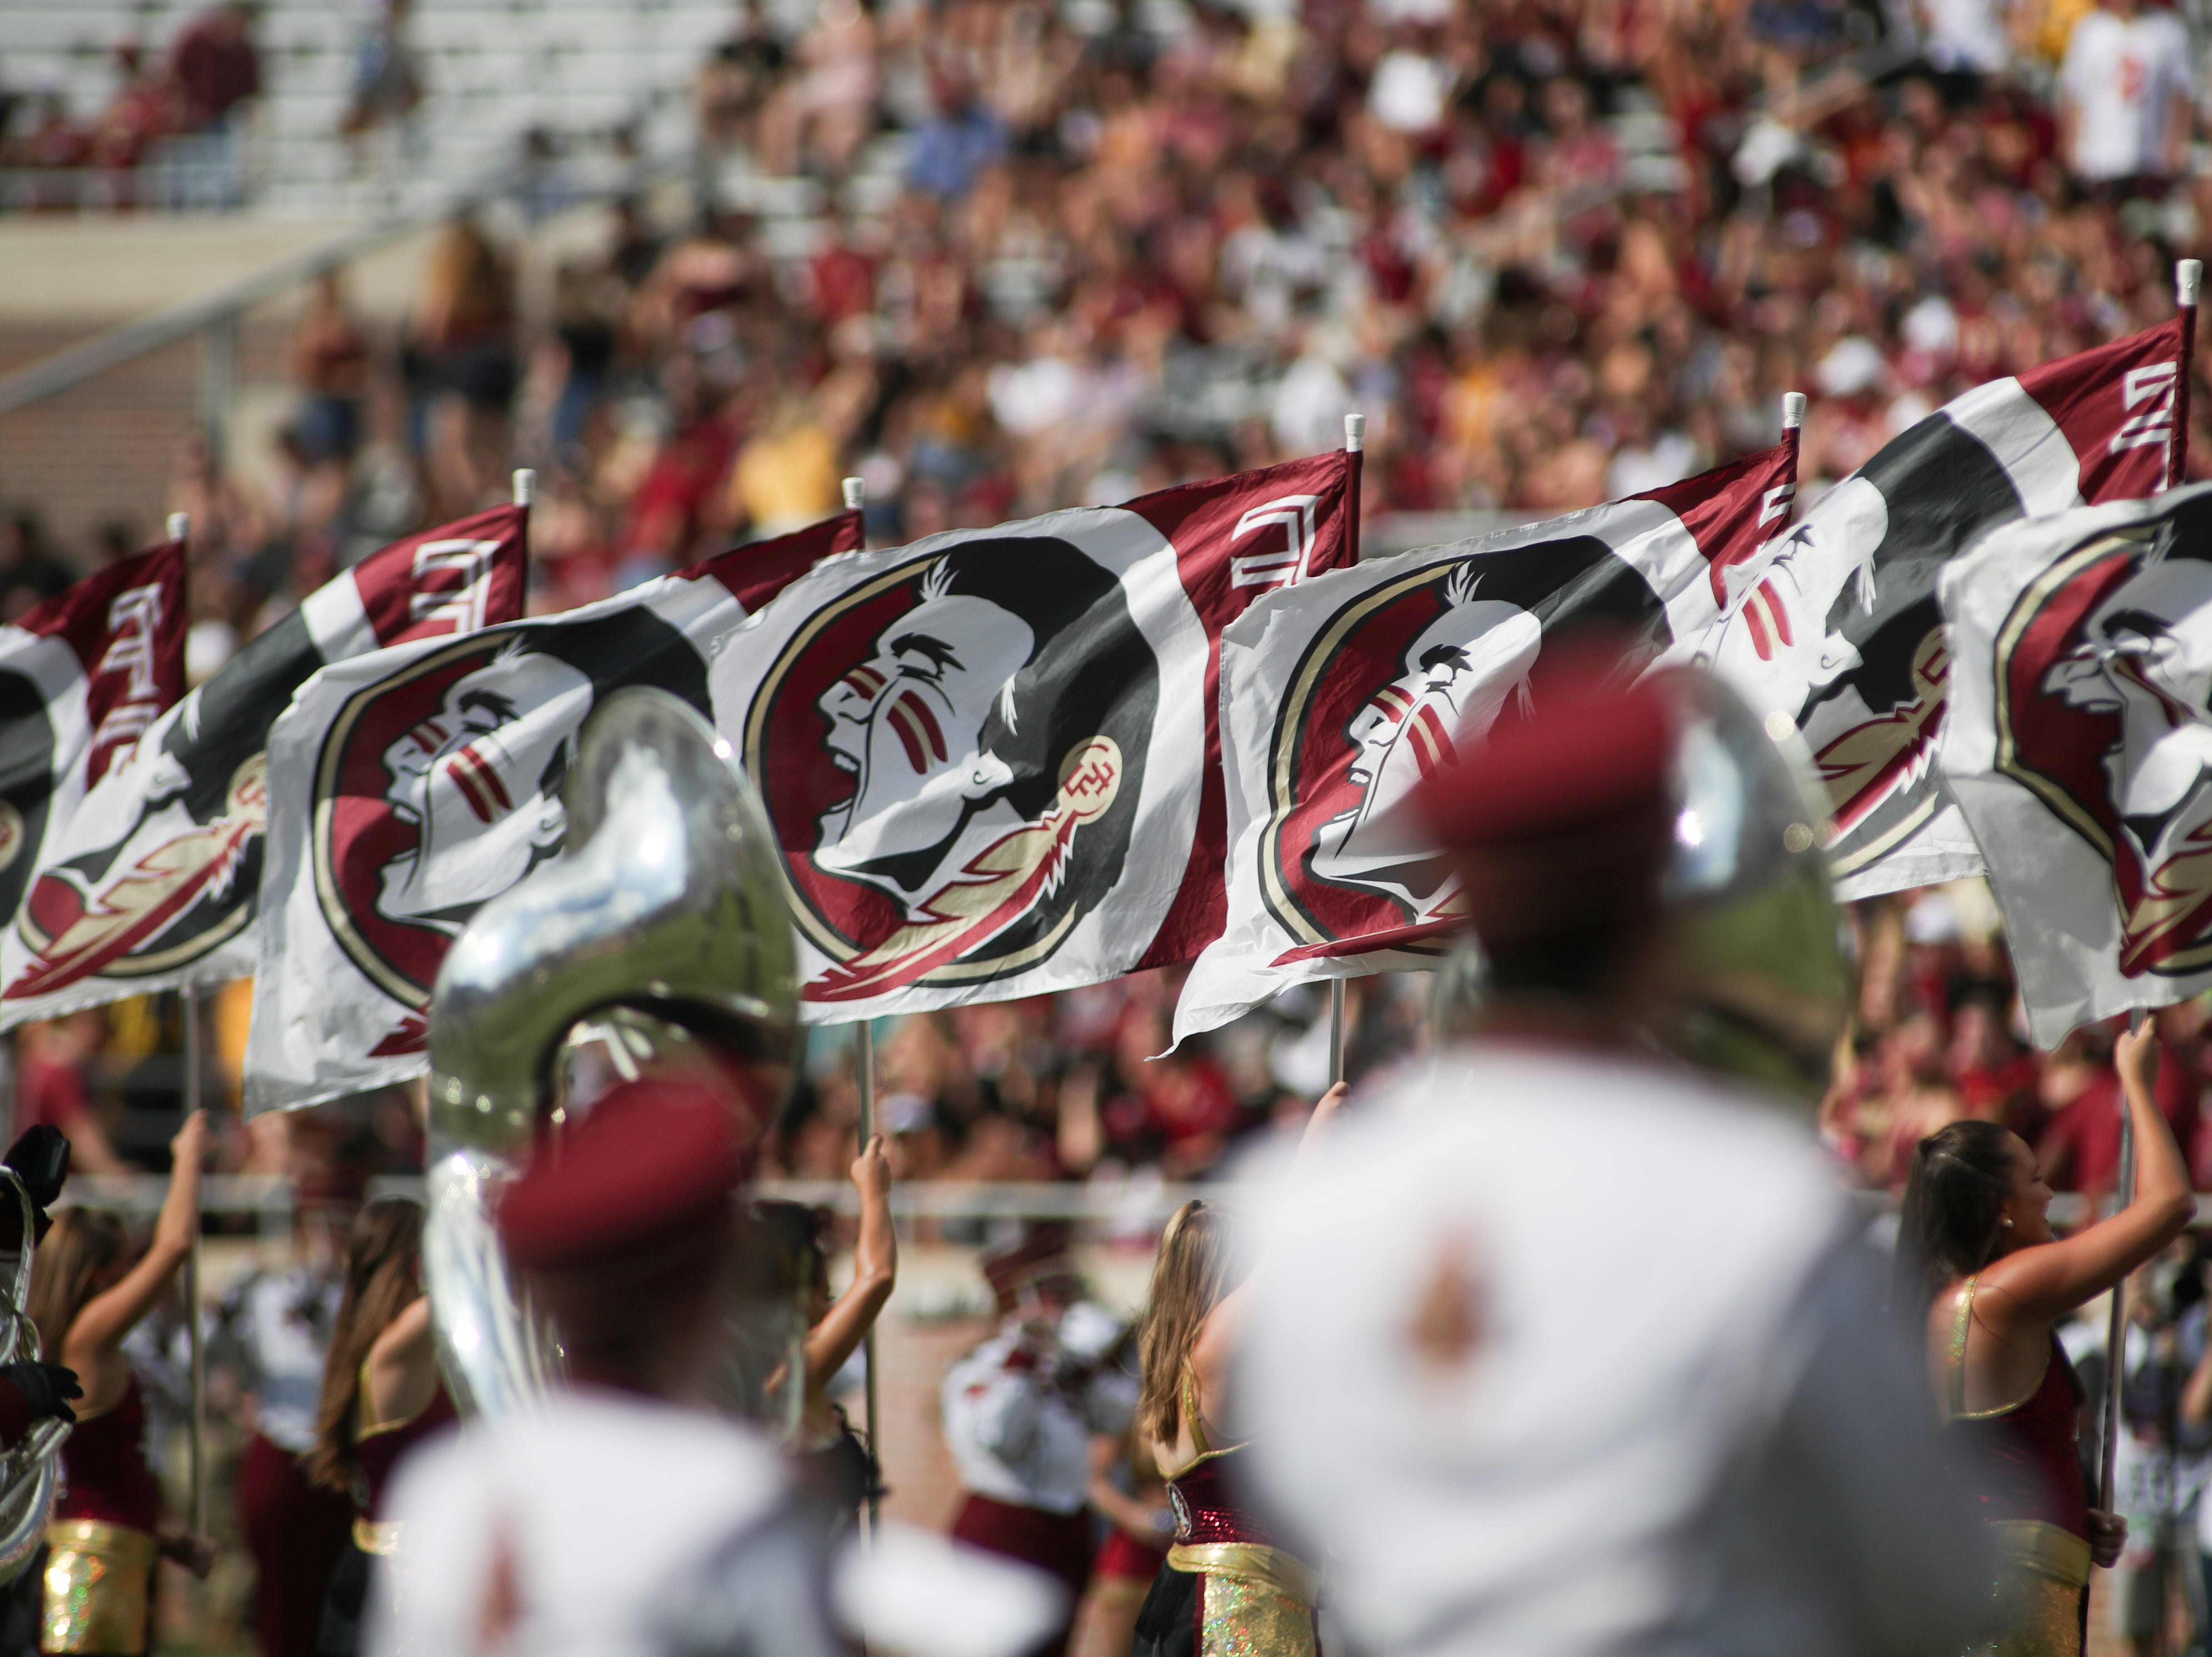 The Marching Chiefs play before FSU's homecoming game against Wake Forest at Doak S. Campbell Stadium Saturday, Oct. 20, 2018.